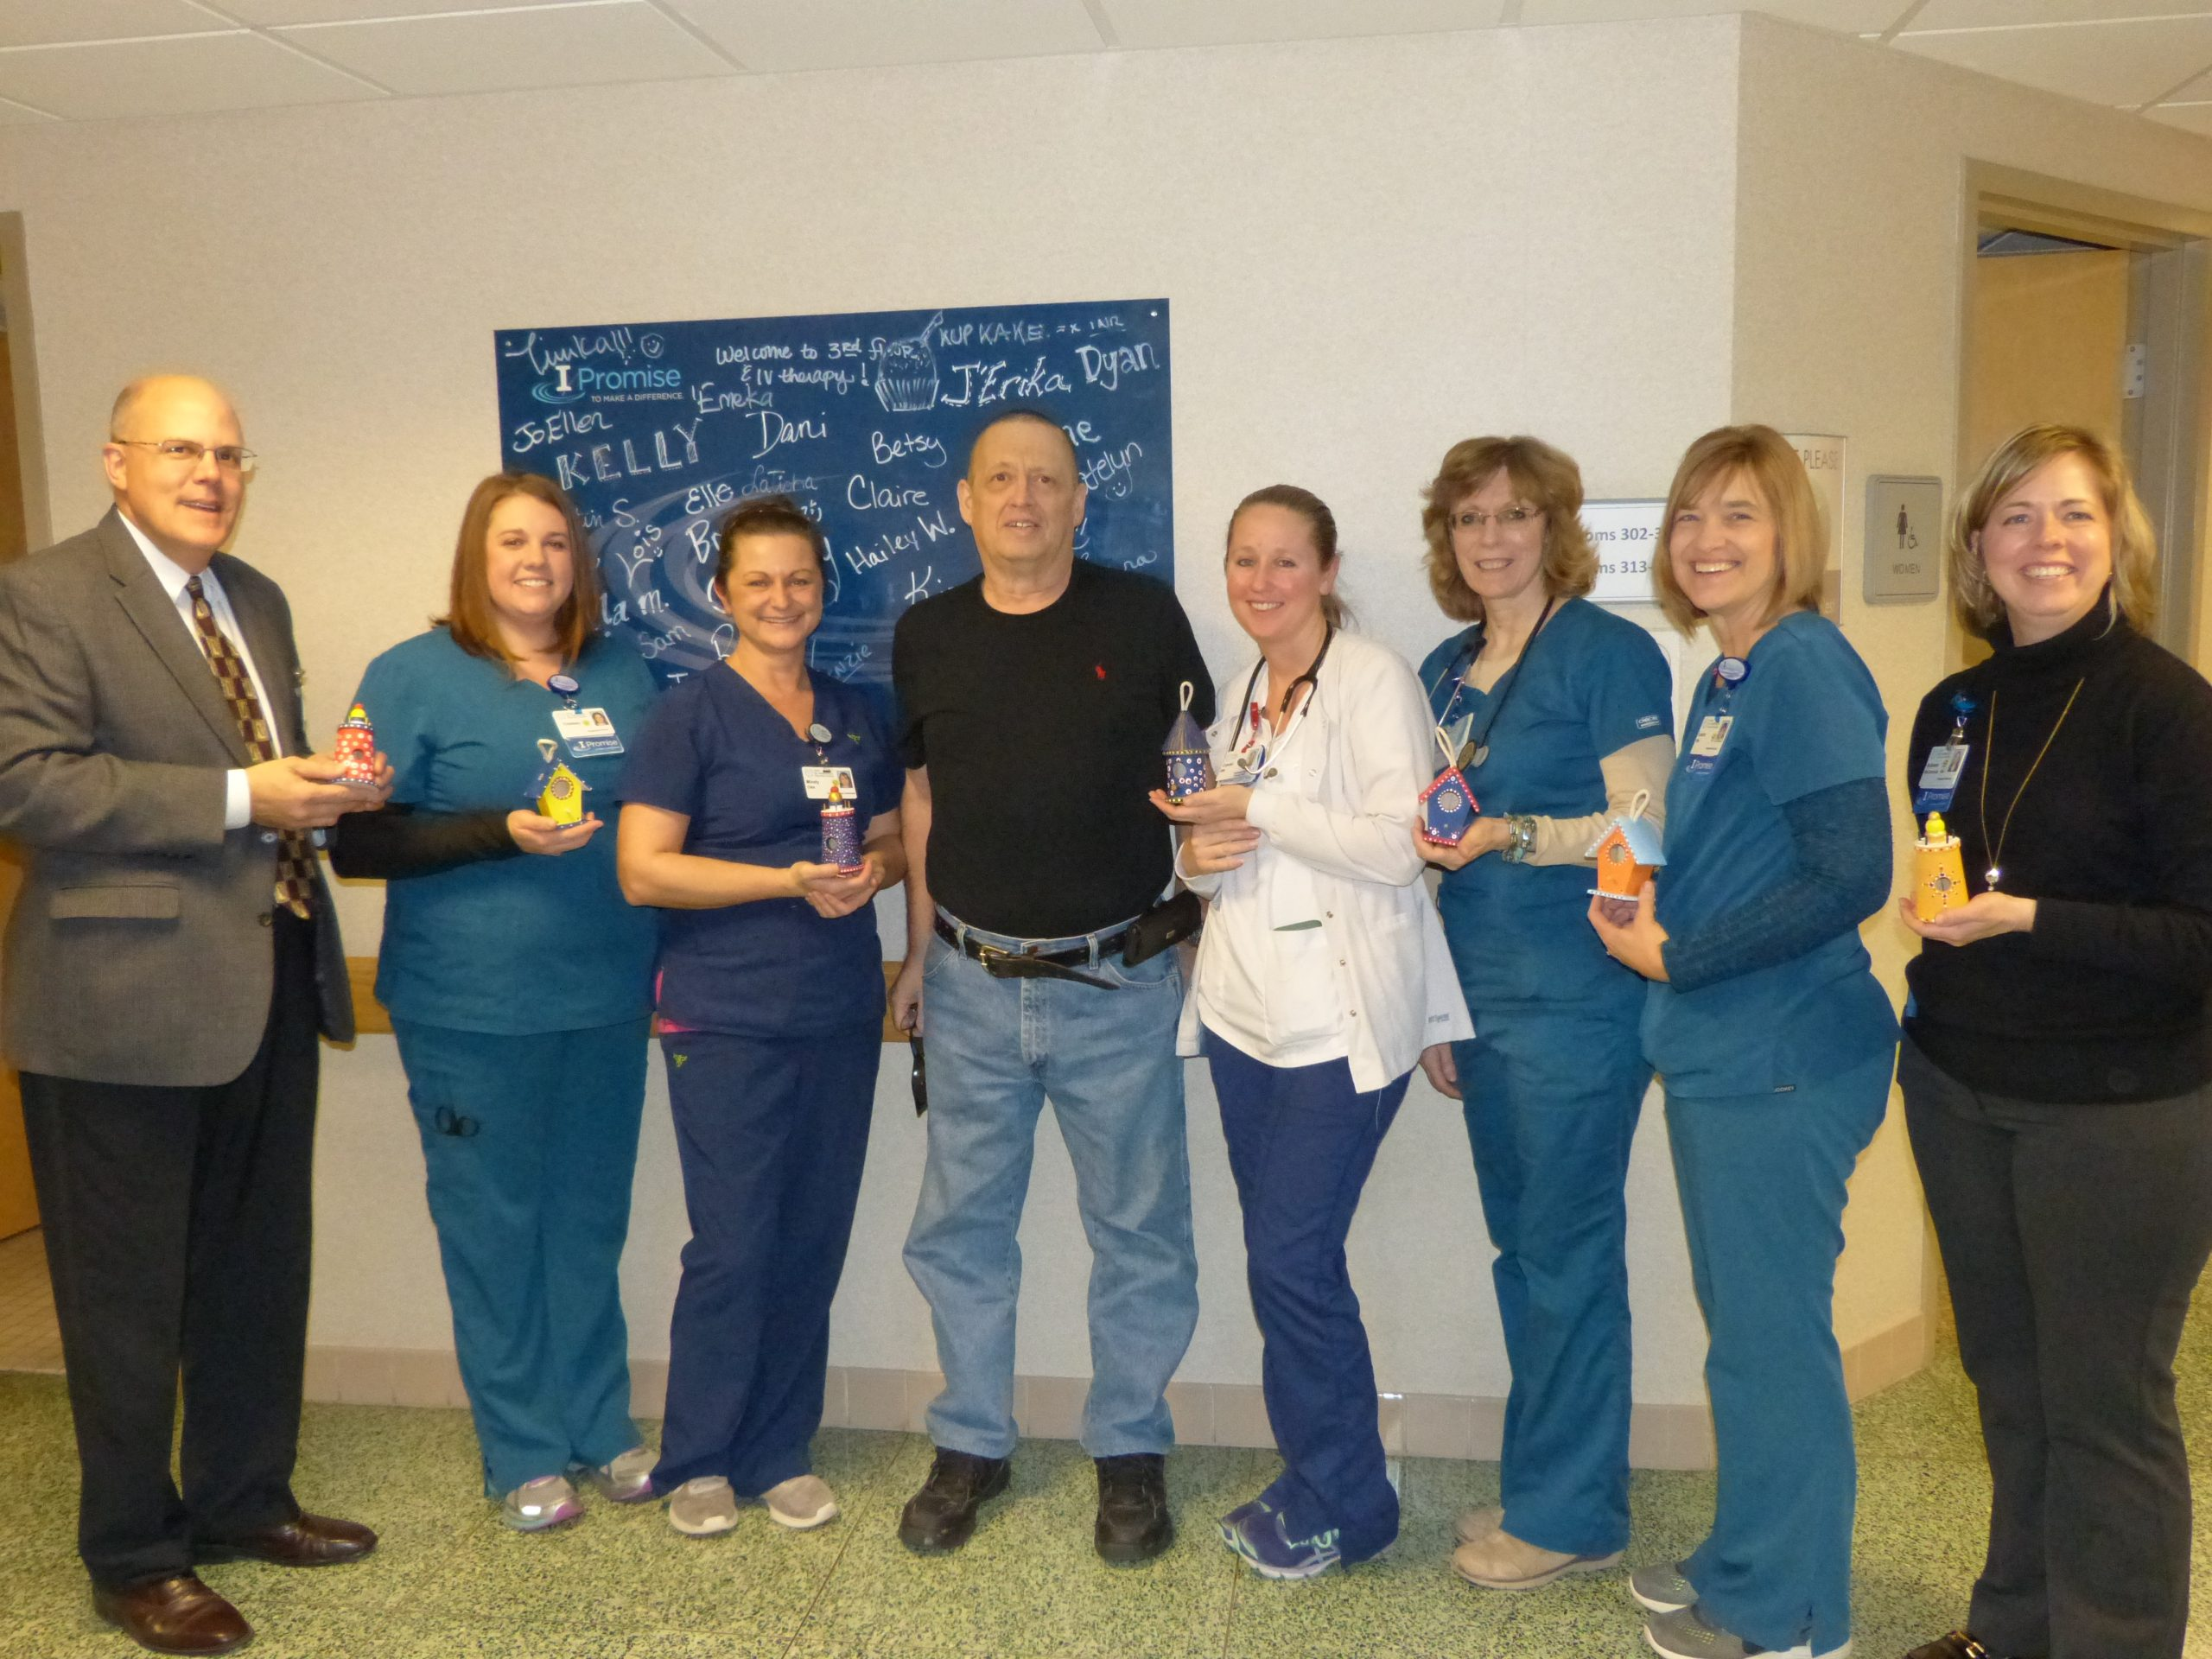 Grateful patient gives token of his appreciation to HSHS St. Anthony's Memorial Hospital nursing staff who cared for him